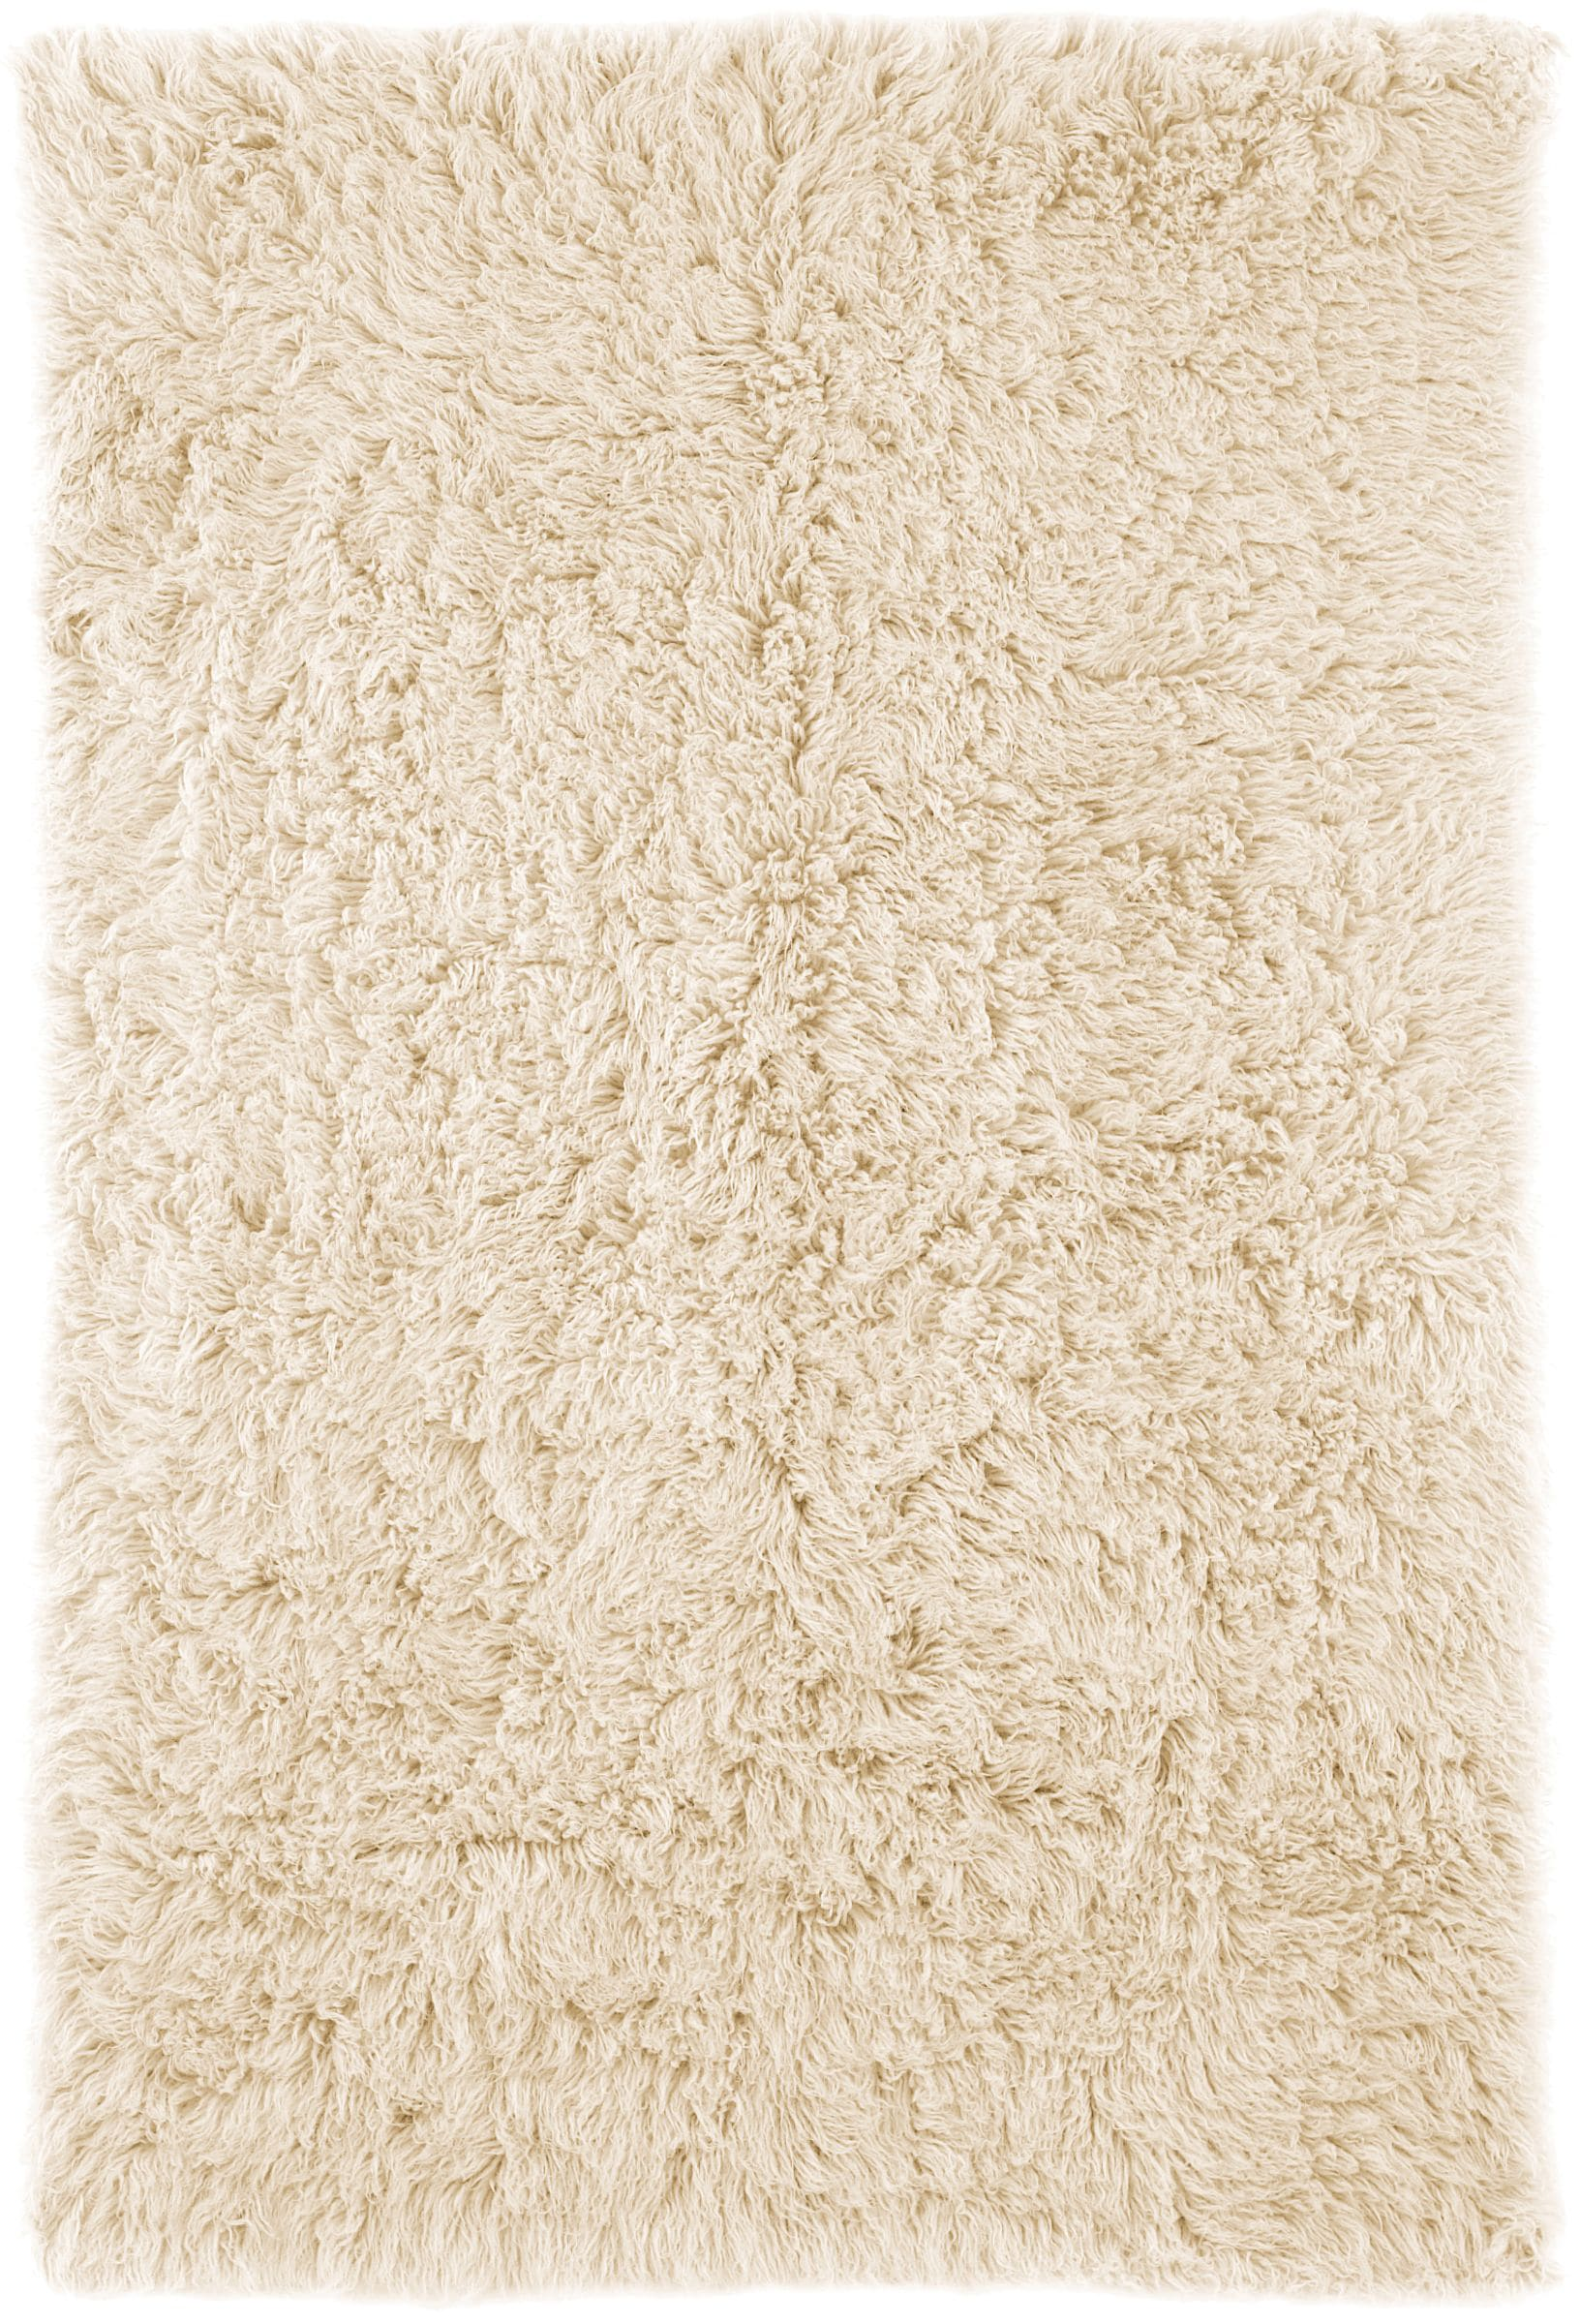 Pictures of flokati rug rugs usa - area rugs in many styles including contemporary, braided,  outdoor eyxgbce